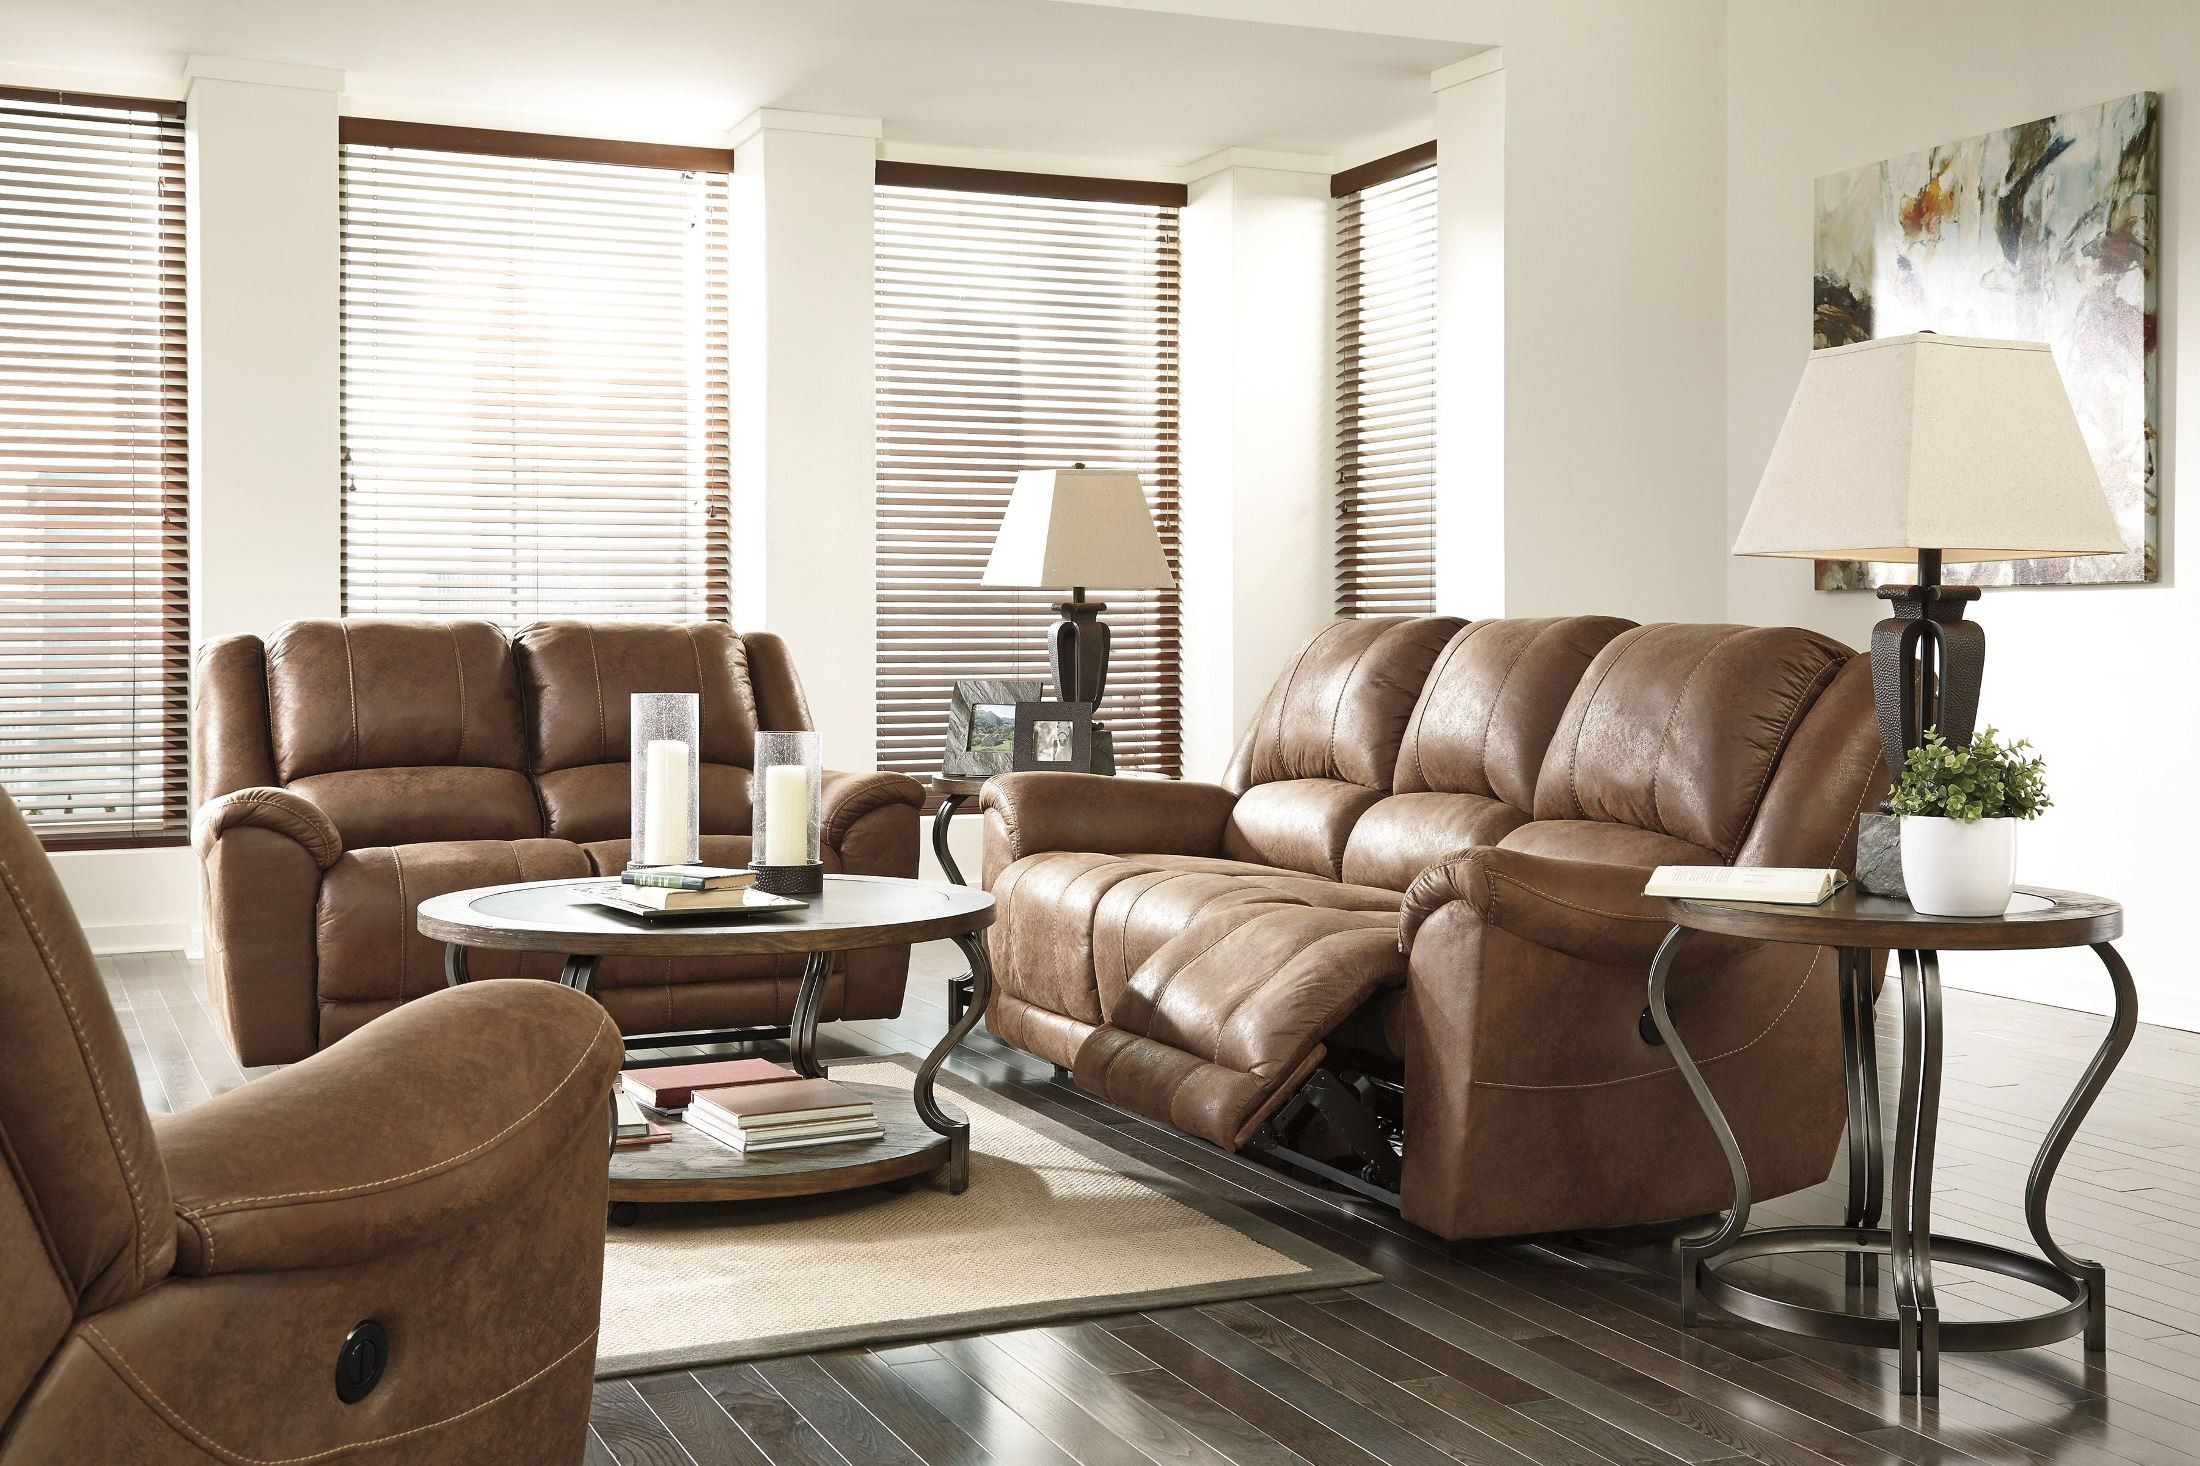 Niarobi saddle reclining sofa from ashley 4060188 for Affordable furniture 3 piece sectional in wyoming saddle